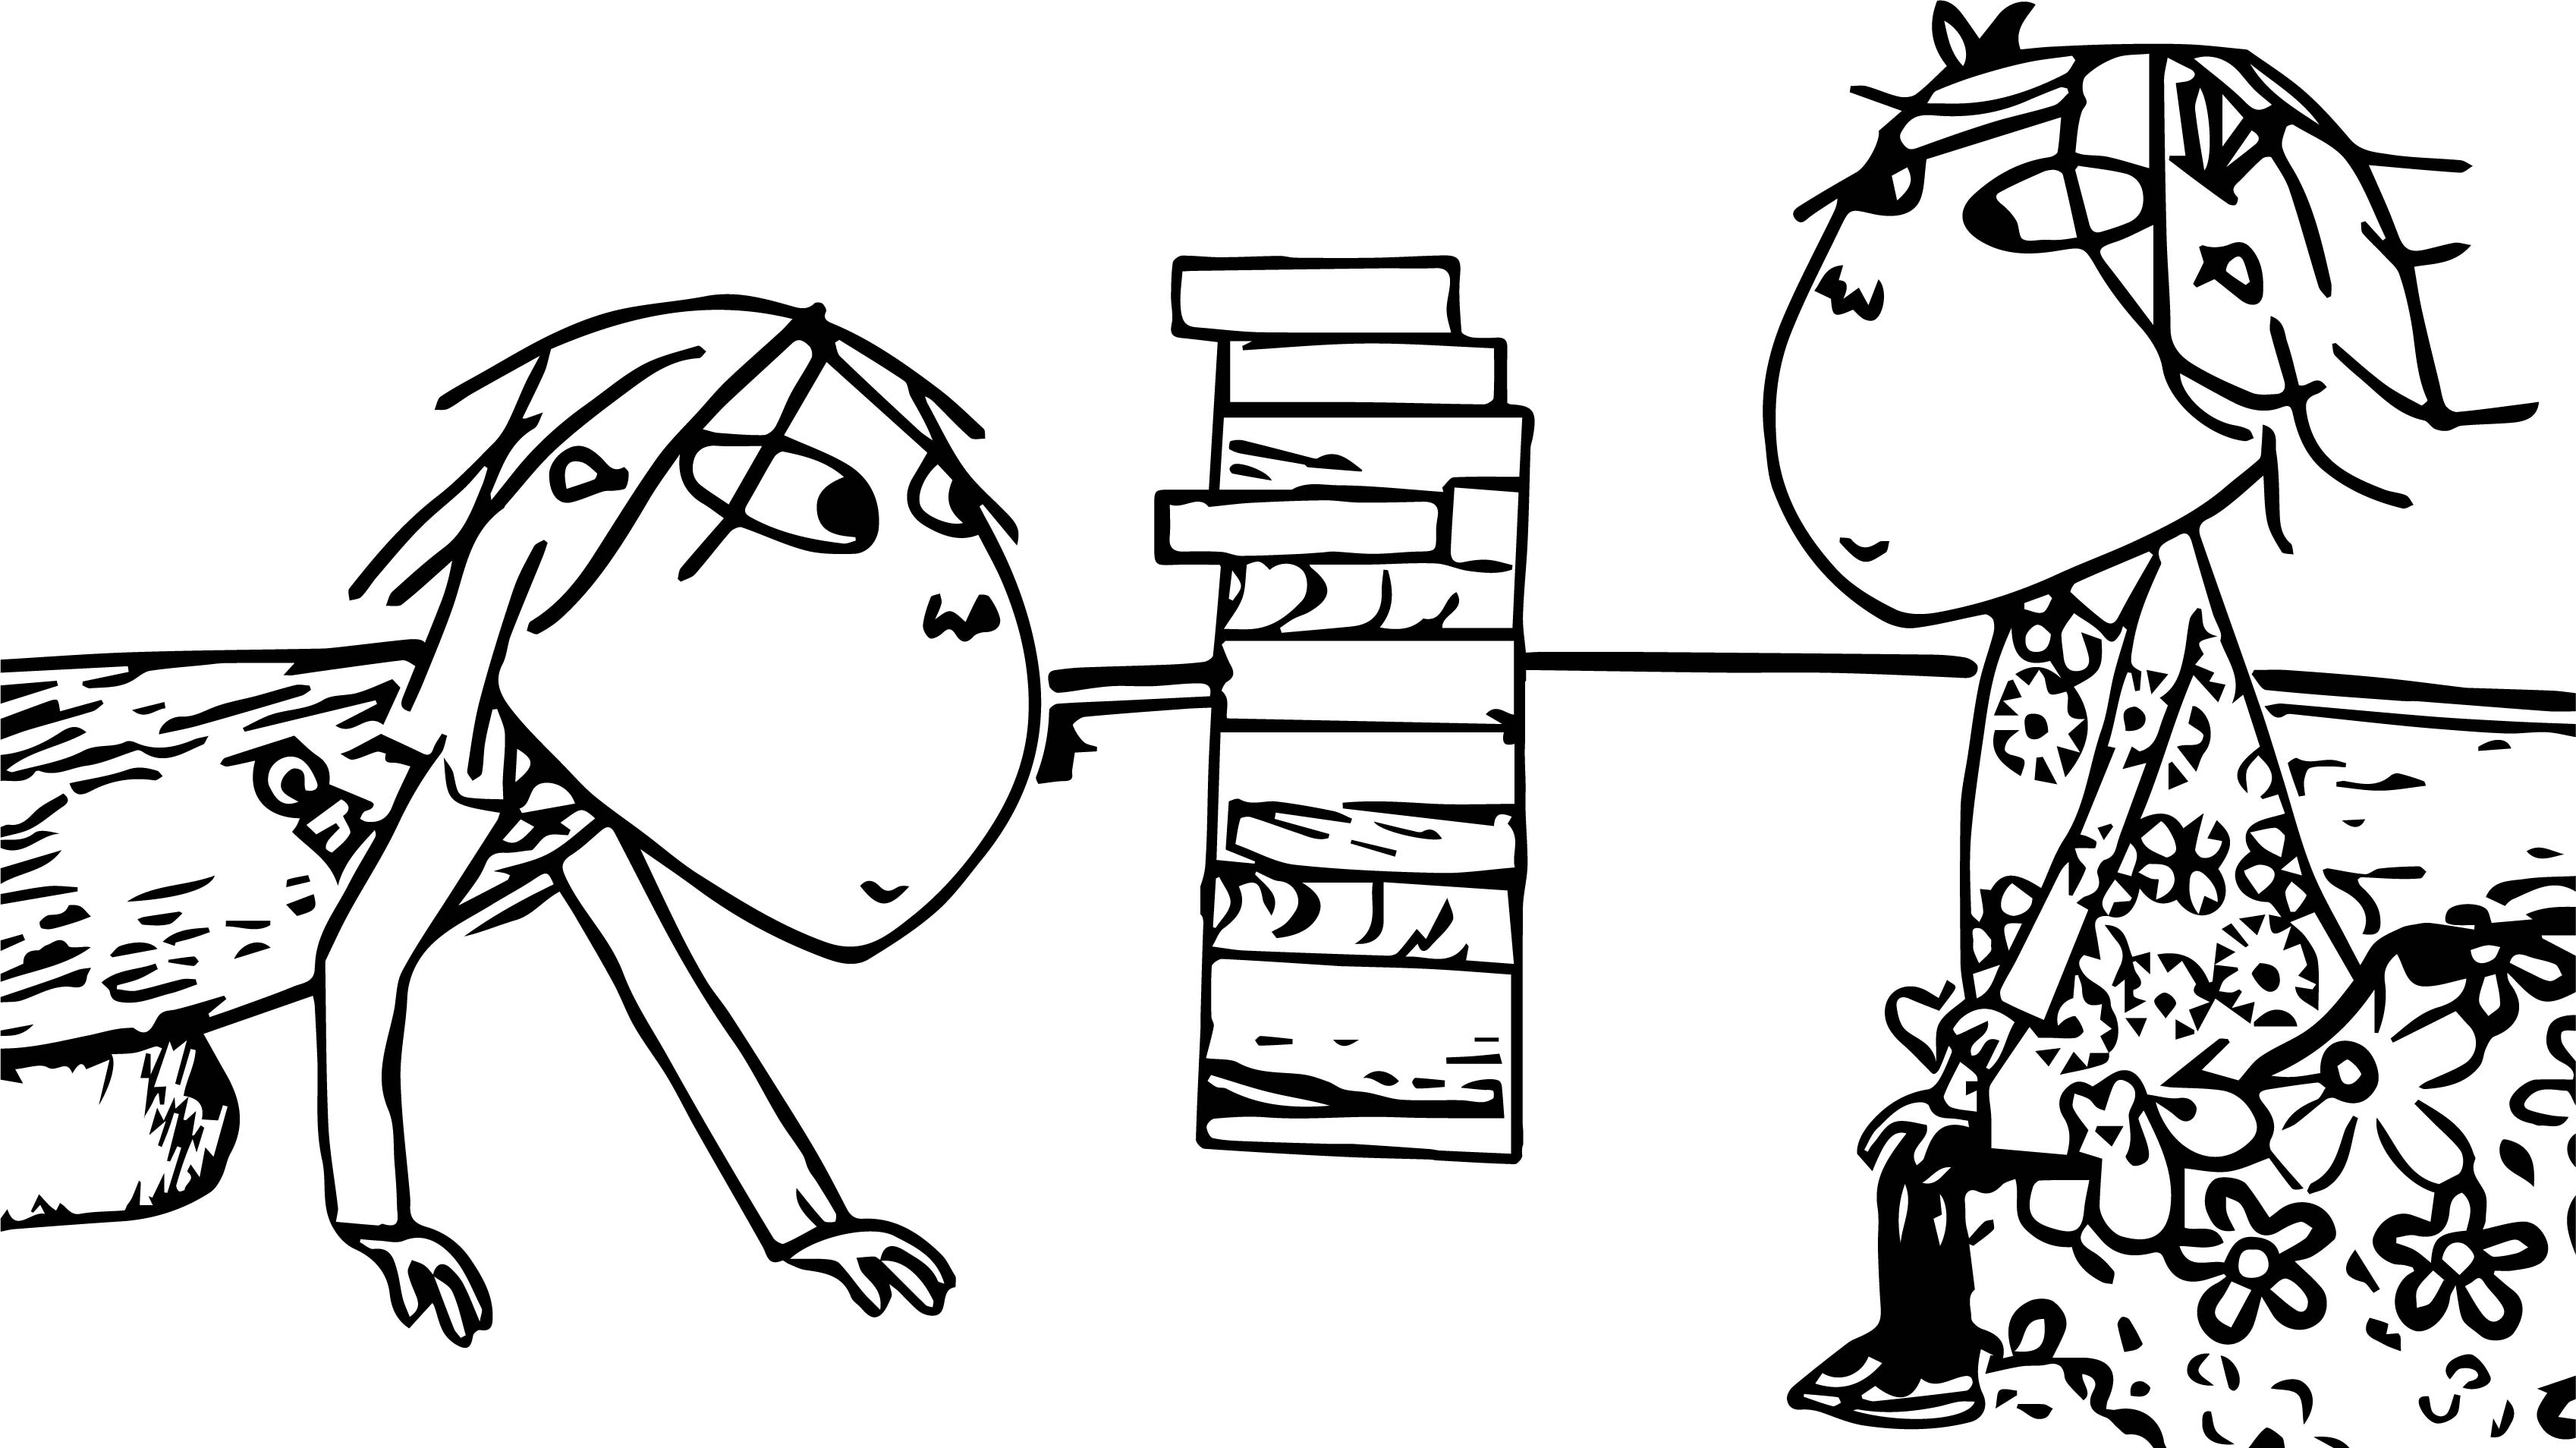 Coloring Pages Airplanes Preschool : Charlie and lola playing jenga coloring page wecoloringpage